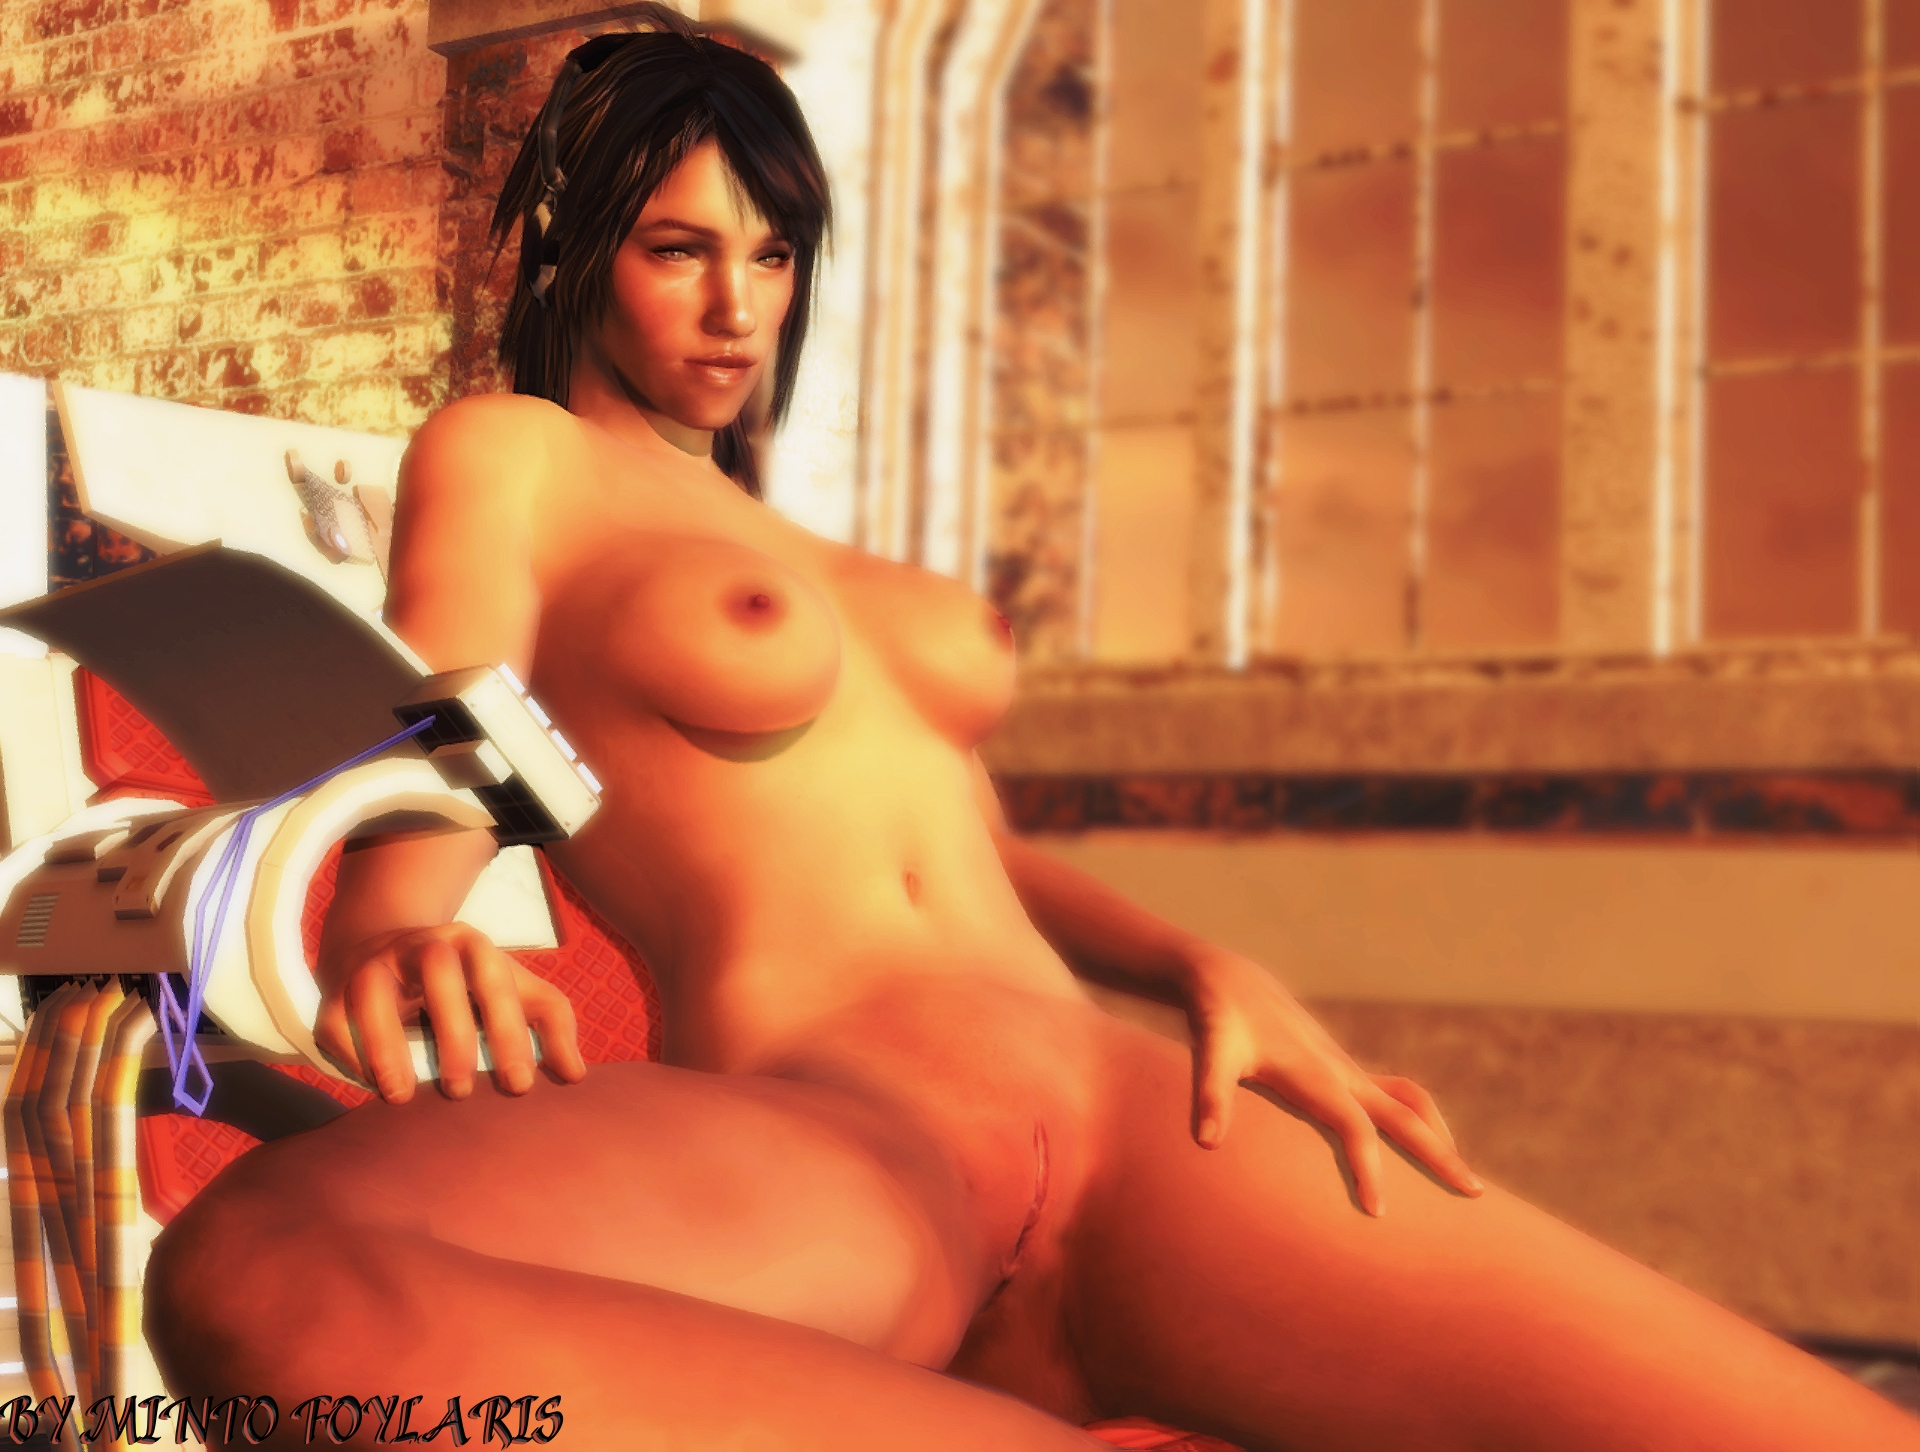 Nude girls from assassin creed pics adult download